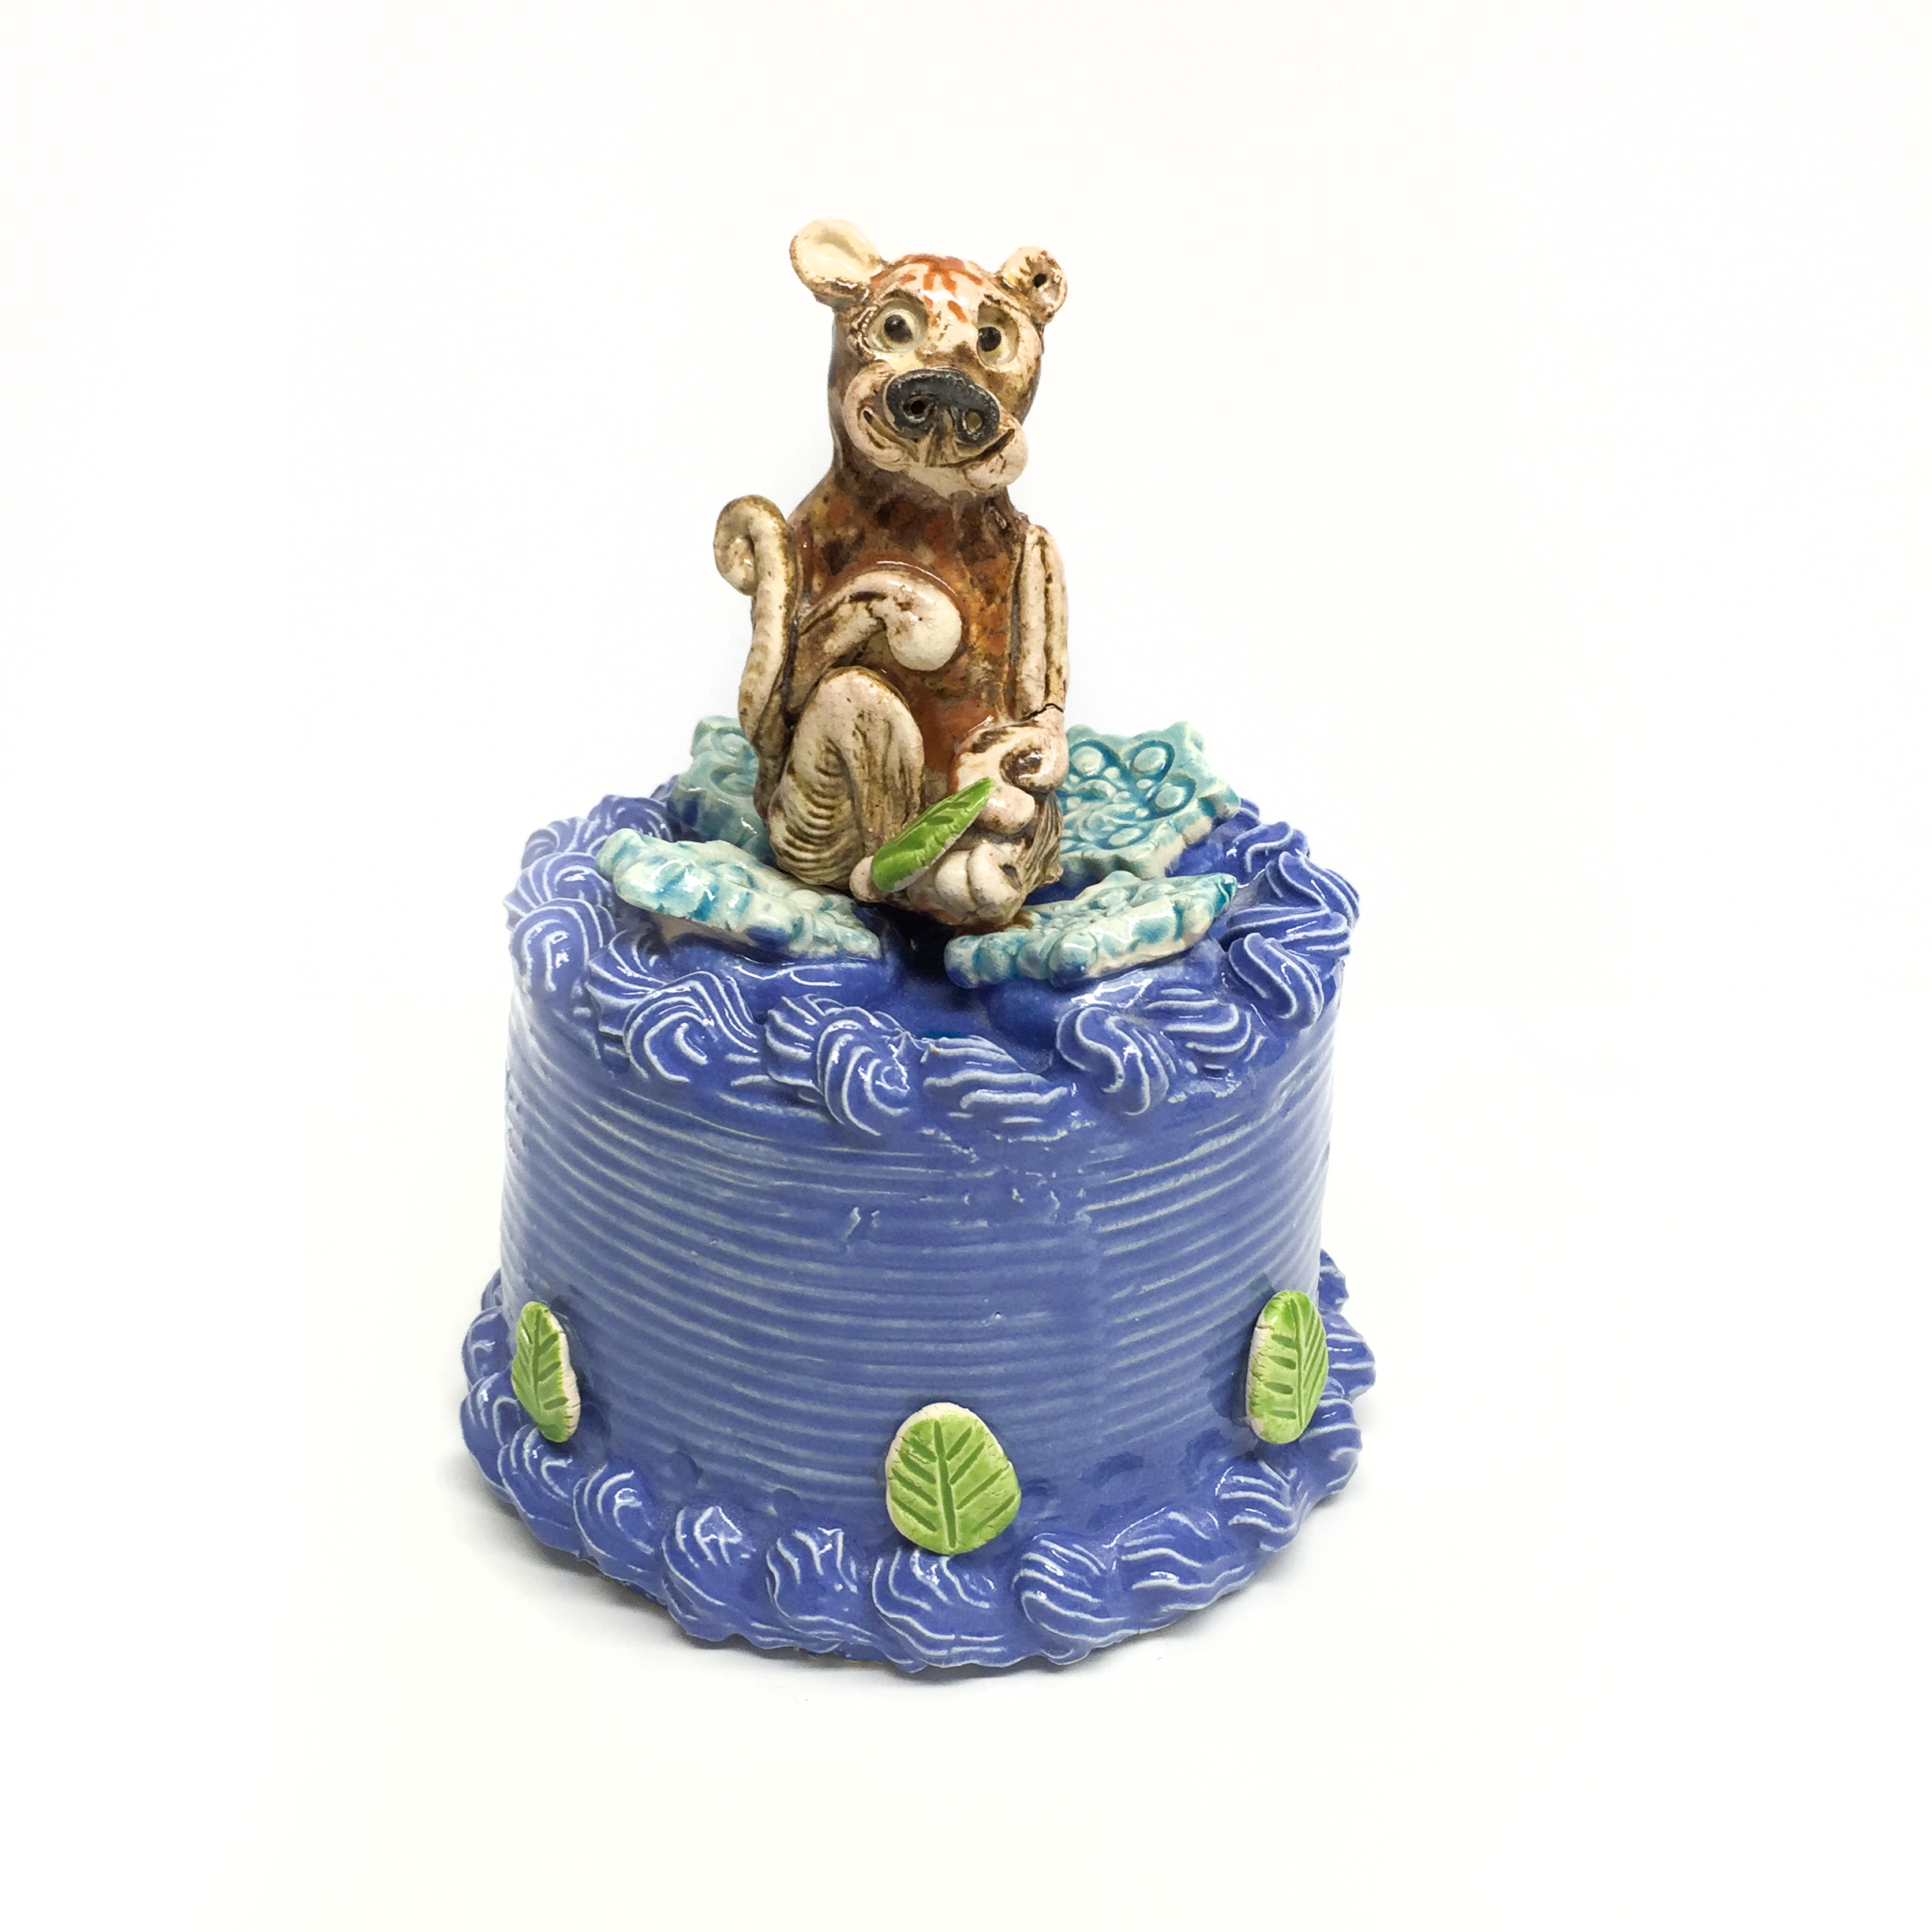 Monkey On Cake  by  Jeff Nebeker